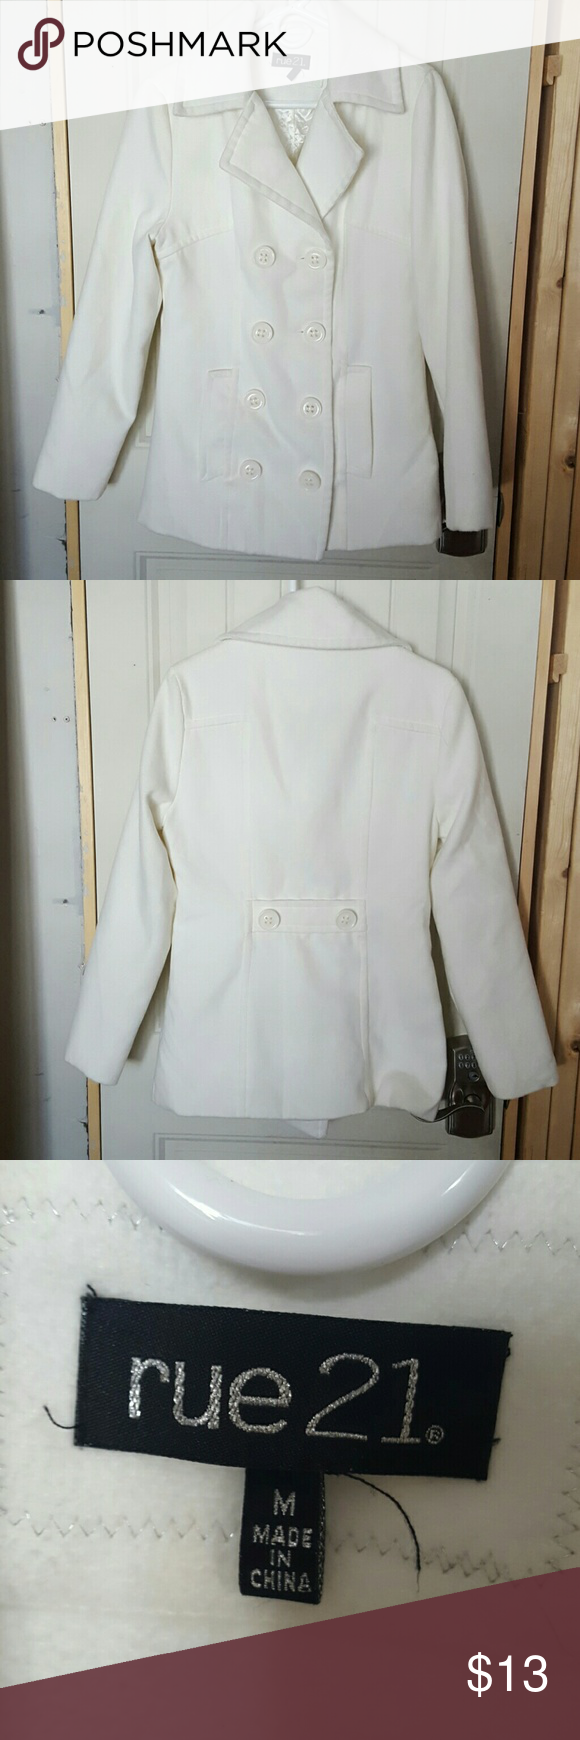 Rue 21 Cream Color Polyester/Wool Blend Pea Coat Gently used pea coat, 2 front pockets and faux belt on back. Machine washable! Rue 21 Jackets & Coats Pea Coats